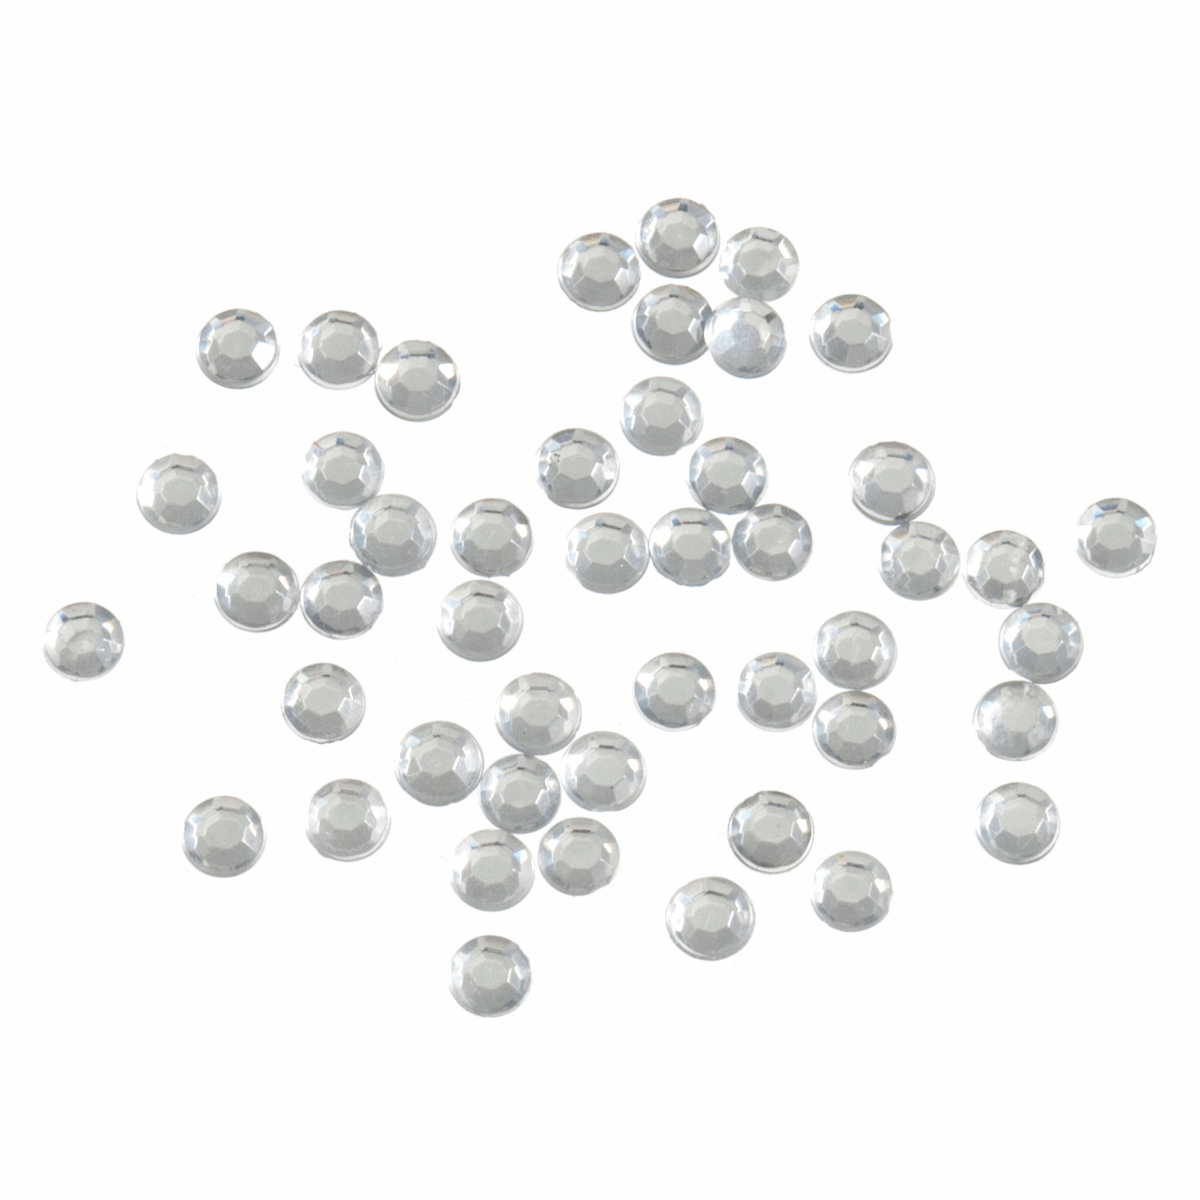 Picture of Acrylic Stones: Glue-On: Round: Small-4mm: Clear